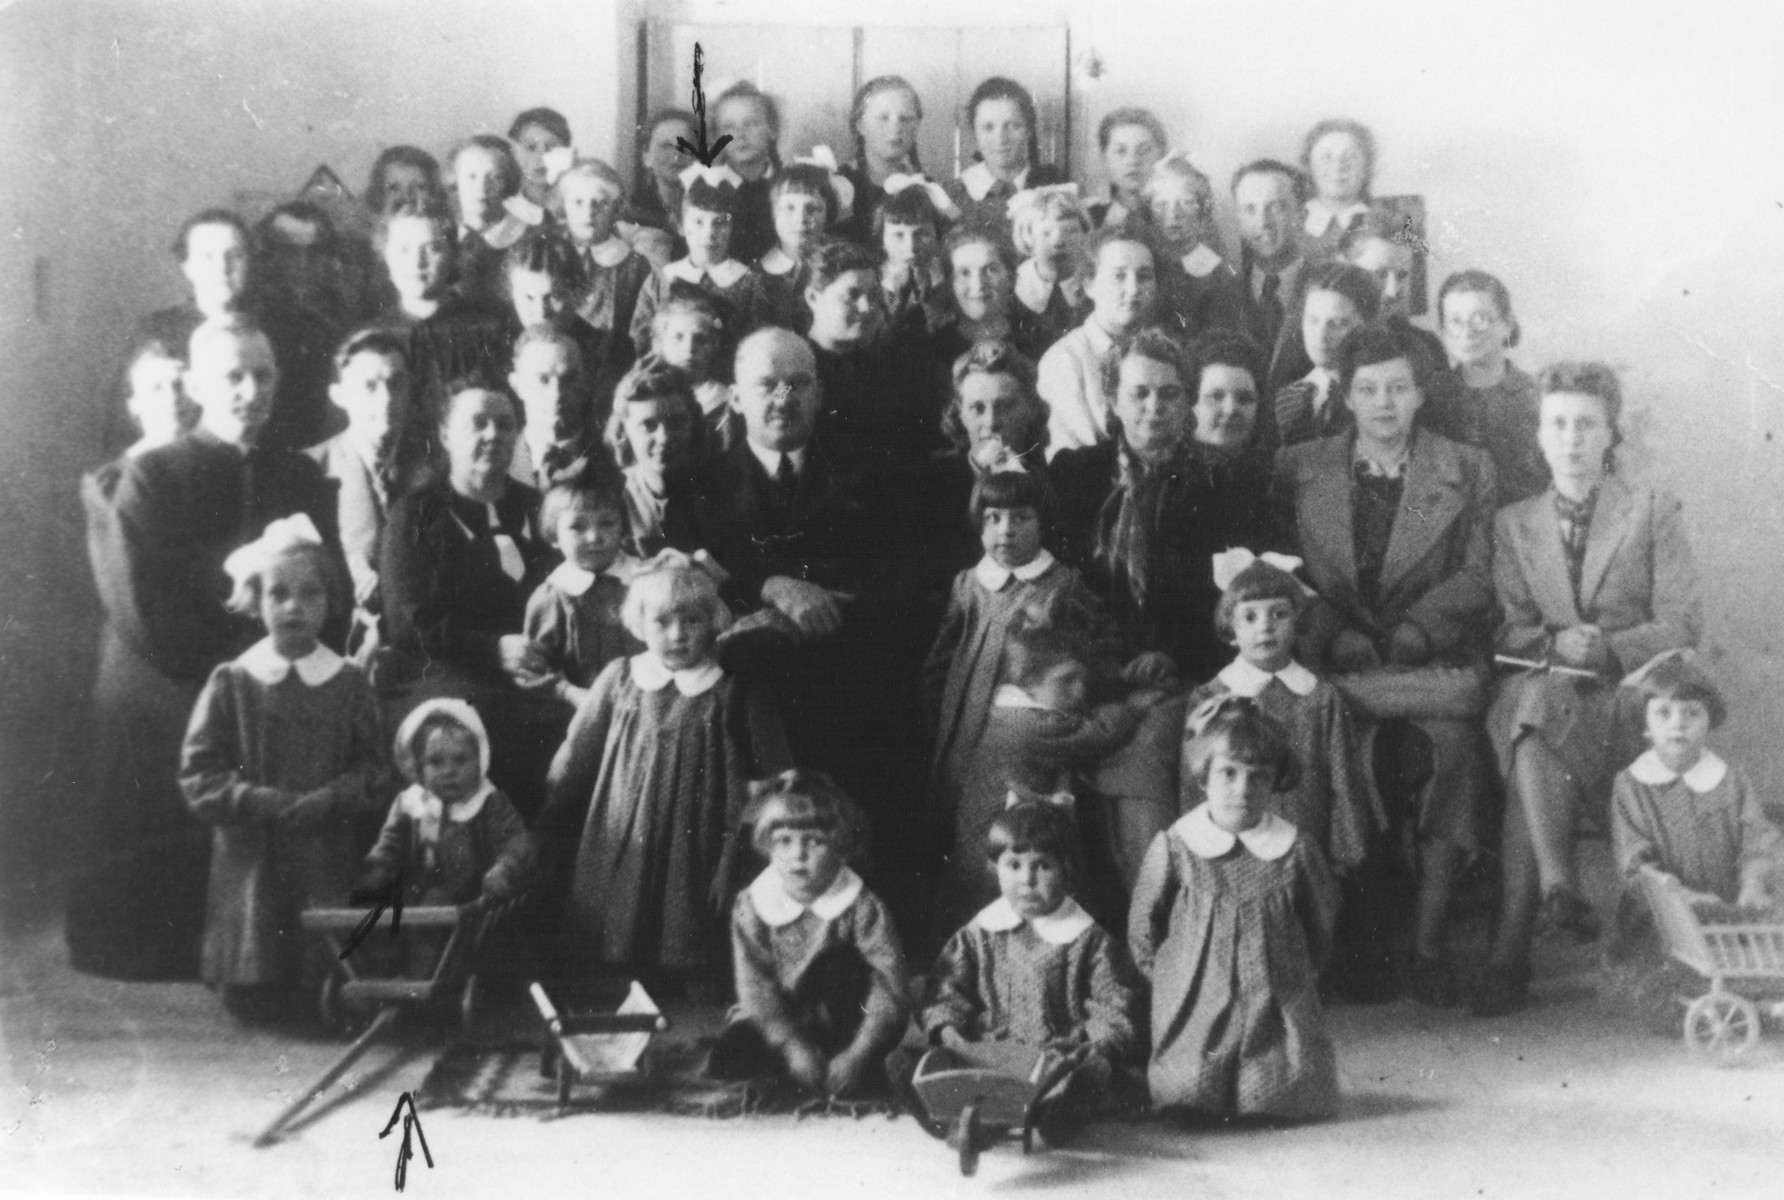 Group portrait of pupils and teachers in the Christian Sisters of Klimontow convent school in Klimontow, Poland.  Among those pictured is the hidden Jewish child, Mania Sztajnman (front row, left, at the arrow).  Also pictured is a Polish pupil, Krysia Cichos (second row from the top, center with a bow in her hair), who sent this photo to Mania in 2002, and Sister Maria Herman, the principal of the school (directly above Mania).